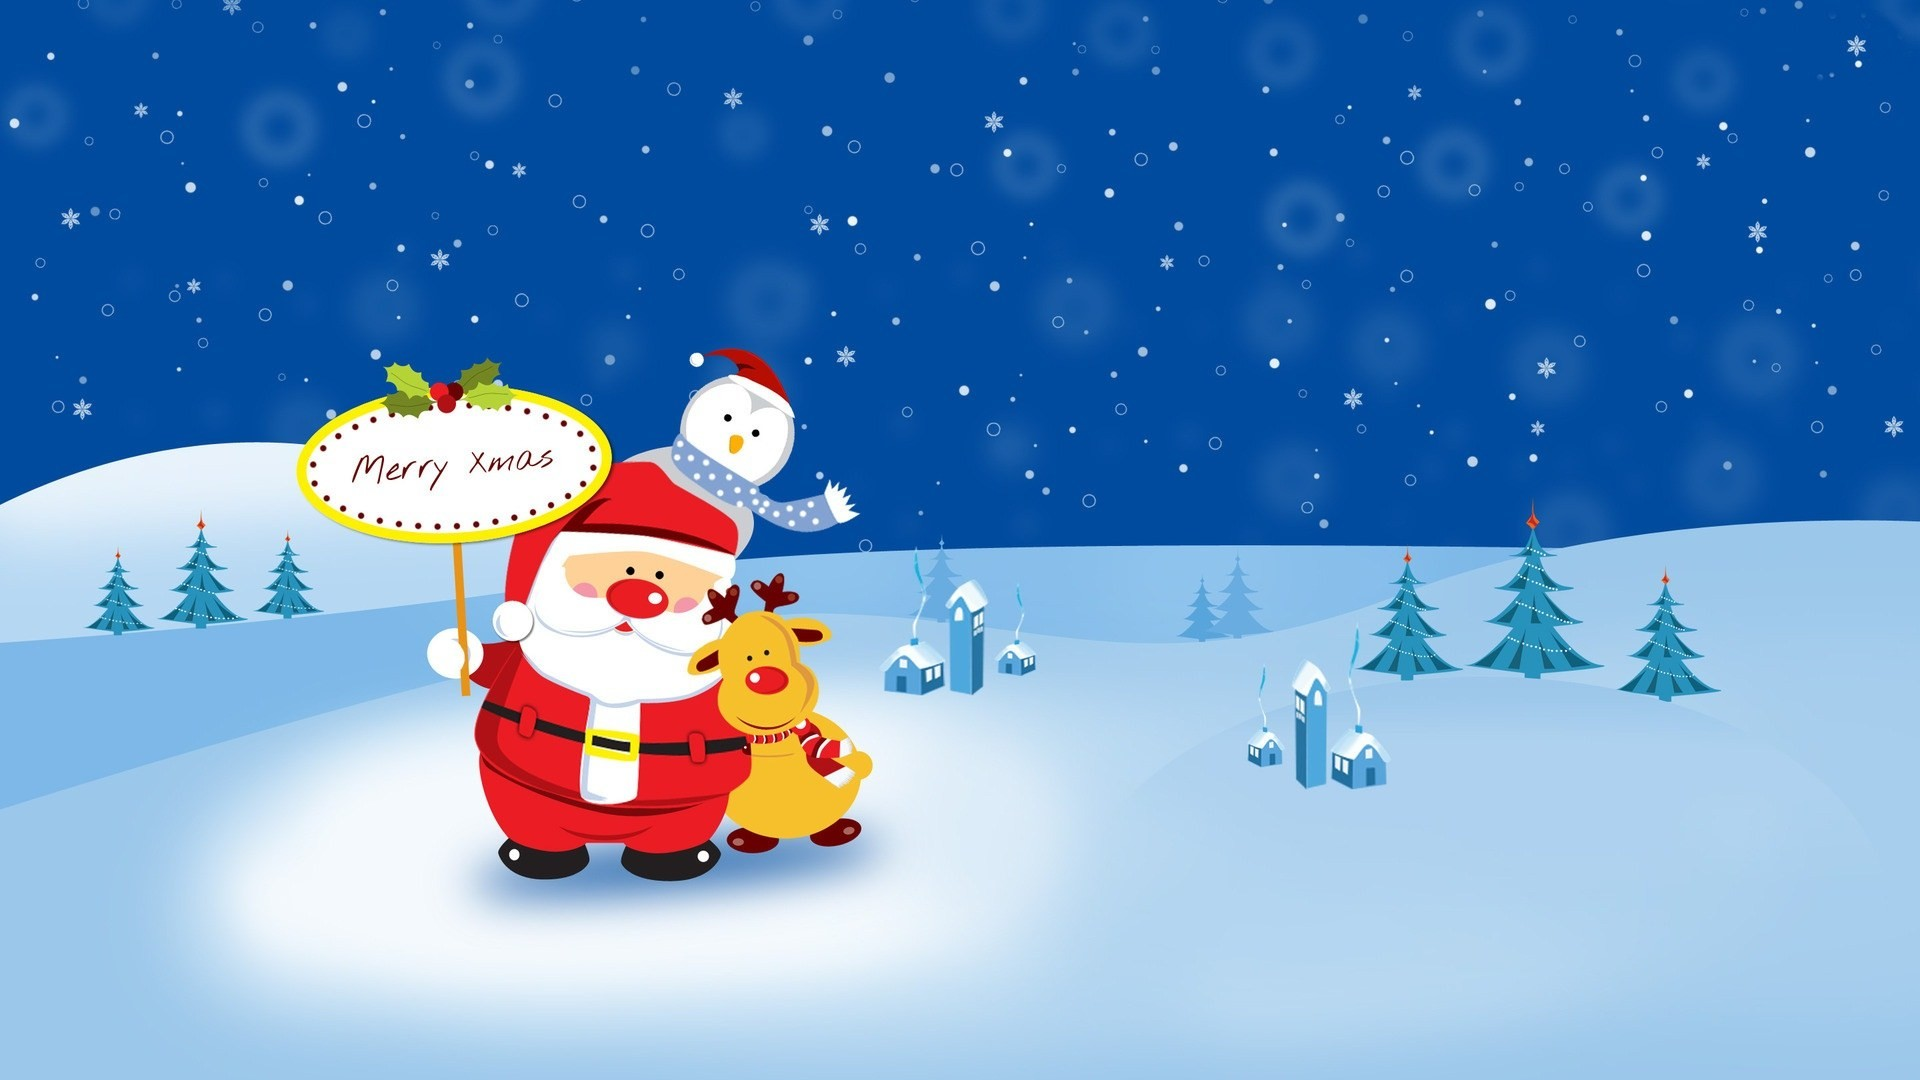 1920x1080 animated christmas wallpapers free download 12 - Free Animated Christmas Wallpaper